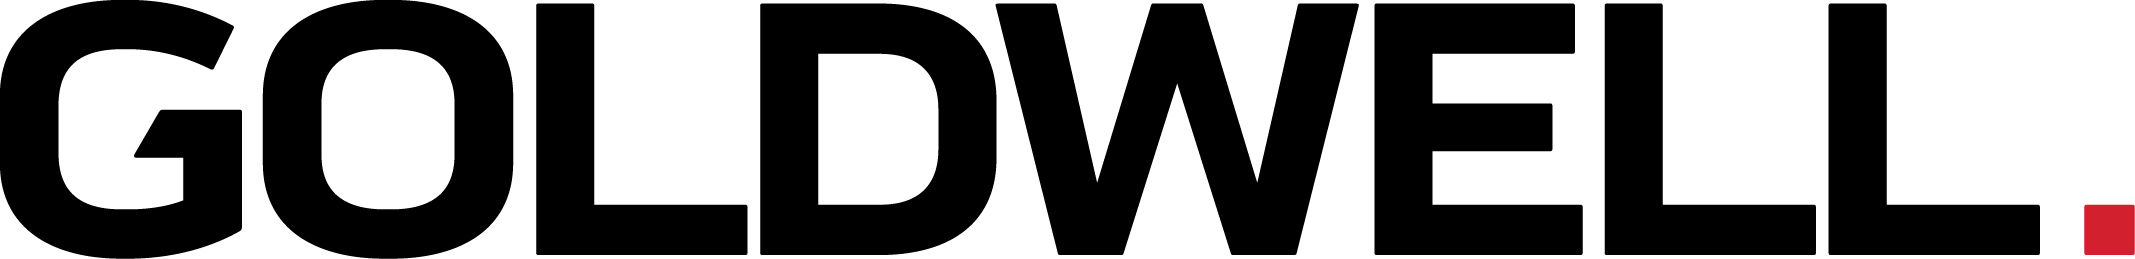 Goldwell_Logo_2-Color_PNG_BRAND_logo_REQUIRED_when_using_images_USE_RIGHTS_EXPIRE_December_20_2020.png